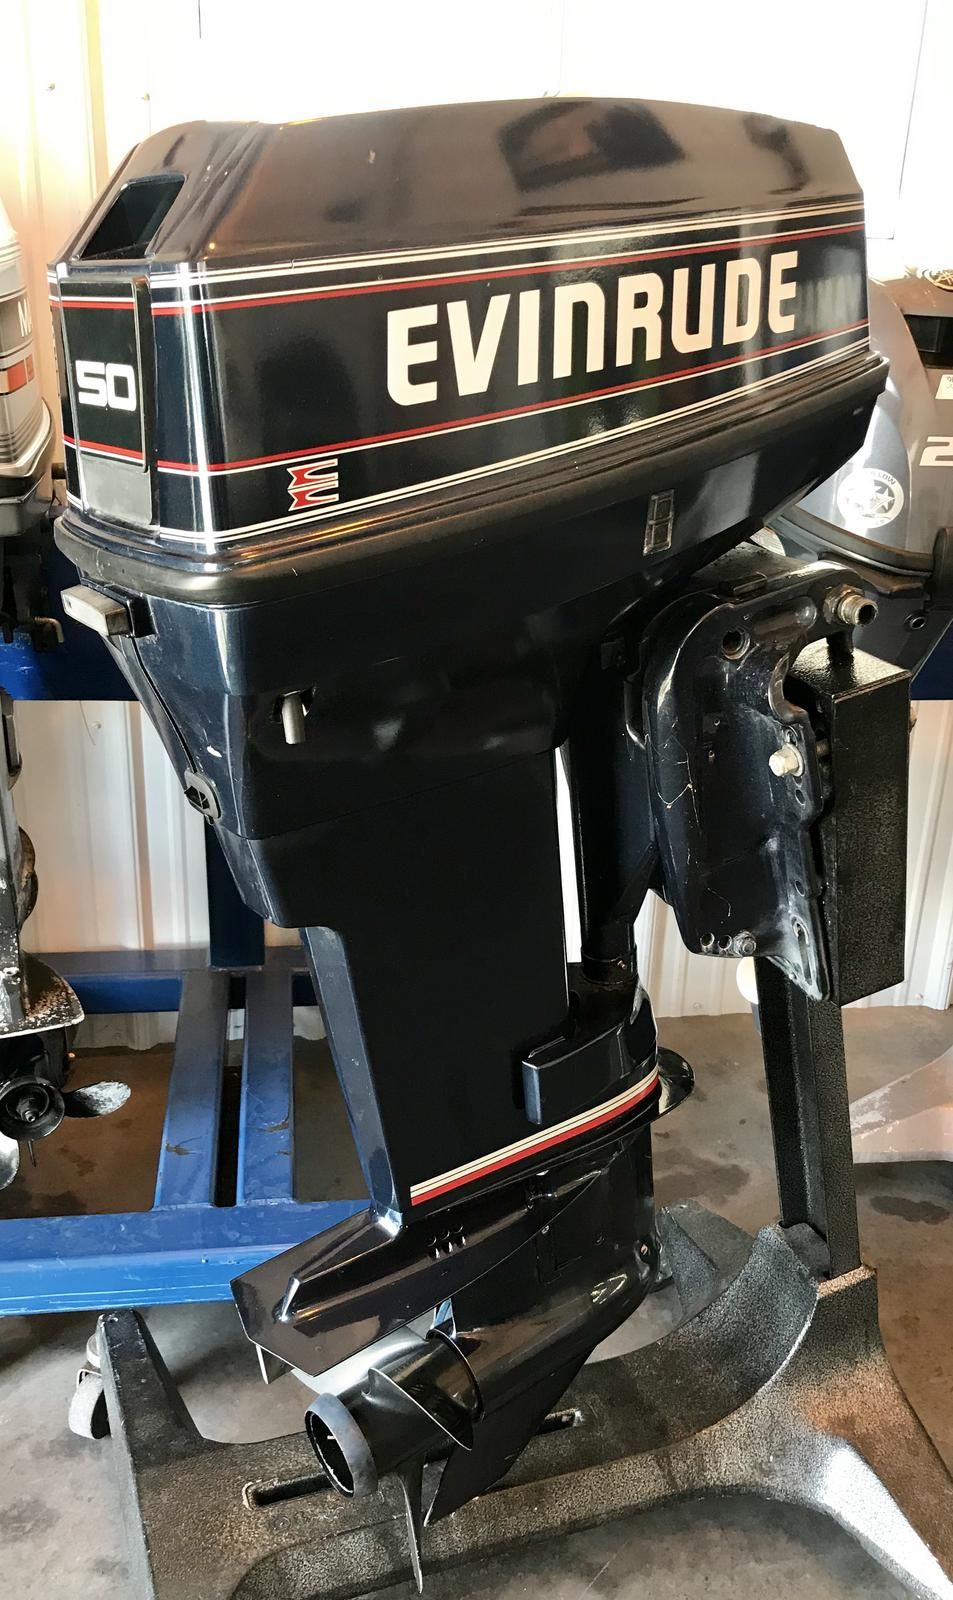 Inventory from Alumacraft and Evinrude Warner's Dock Inc  New